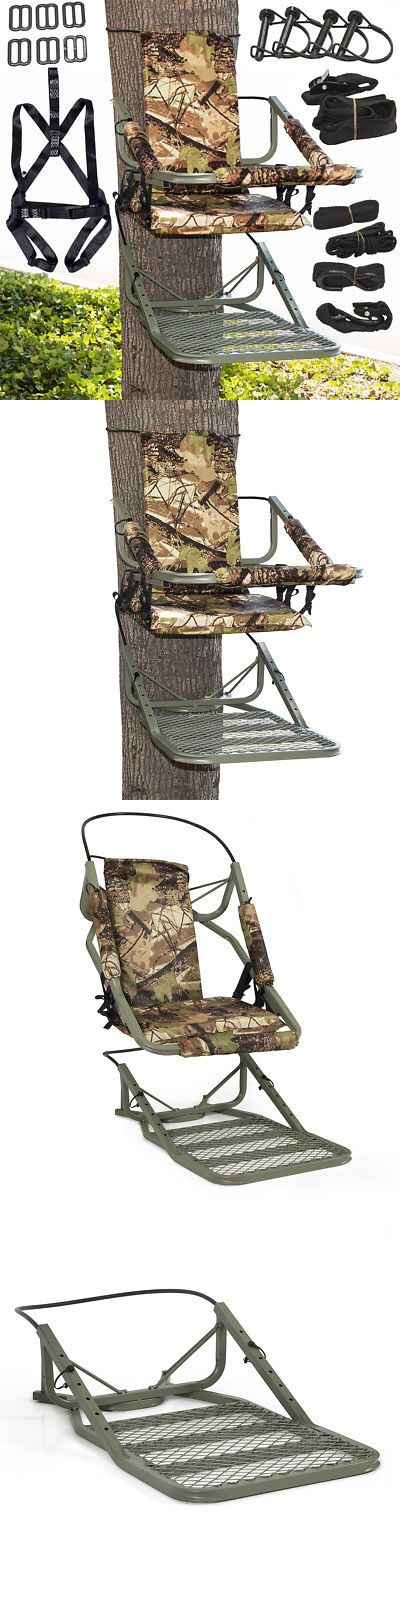 Tree Stands 52508: Tree Stand Climber Climbing Hunting Deer Bow Game Hunt Portable W Back Harness -> BUY IT NOW ONLY: $69.97 on eBay!